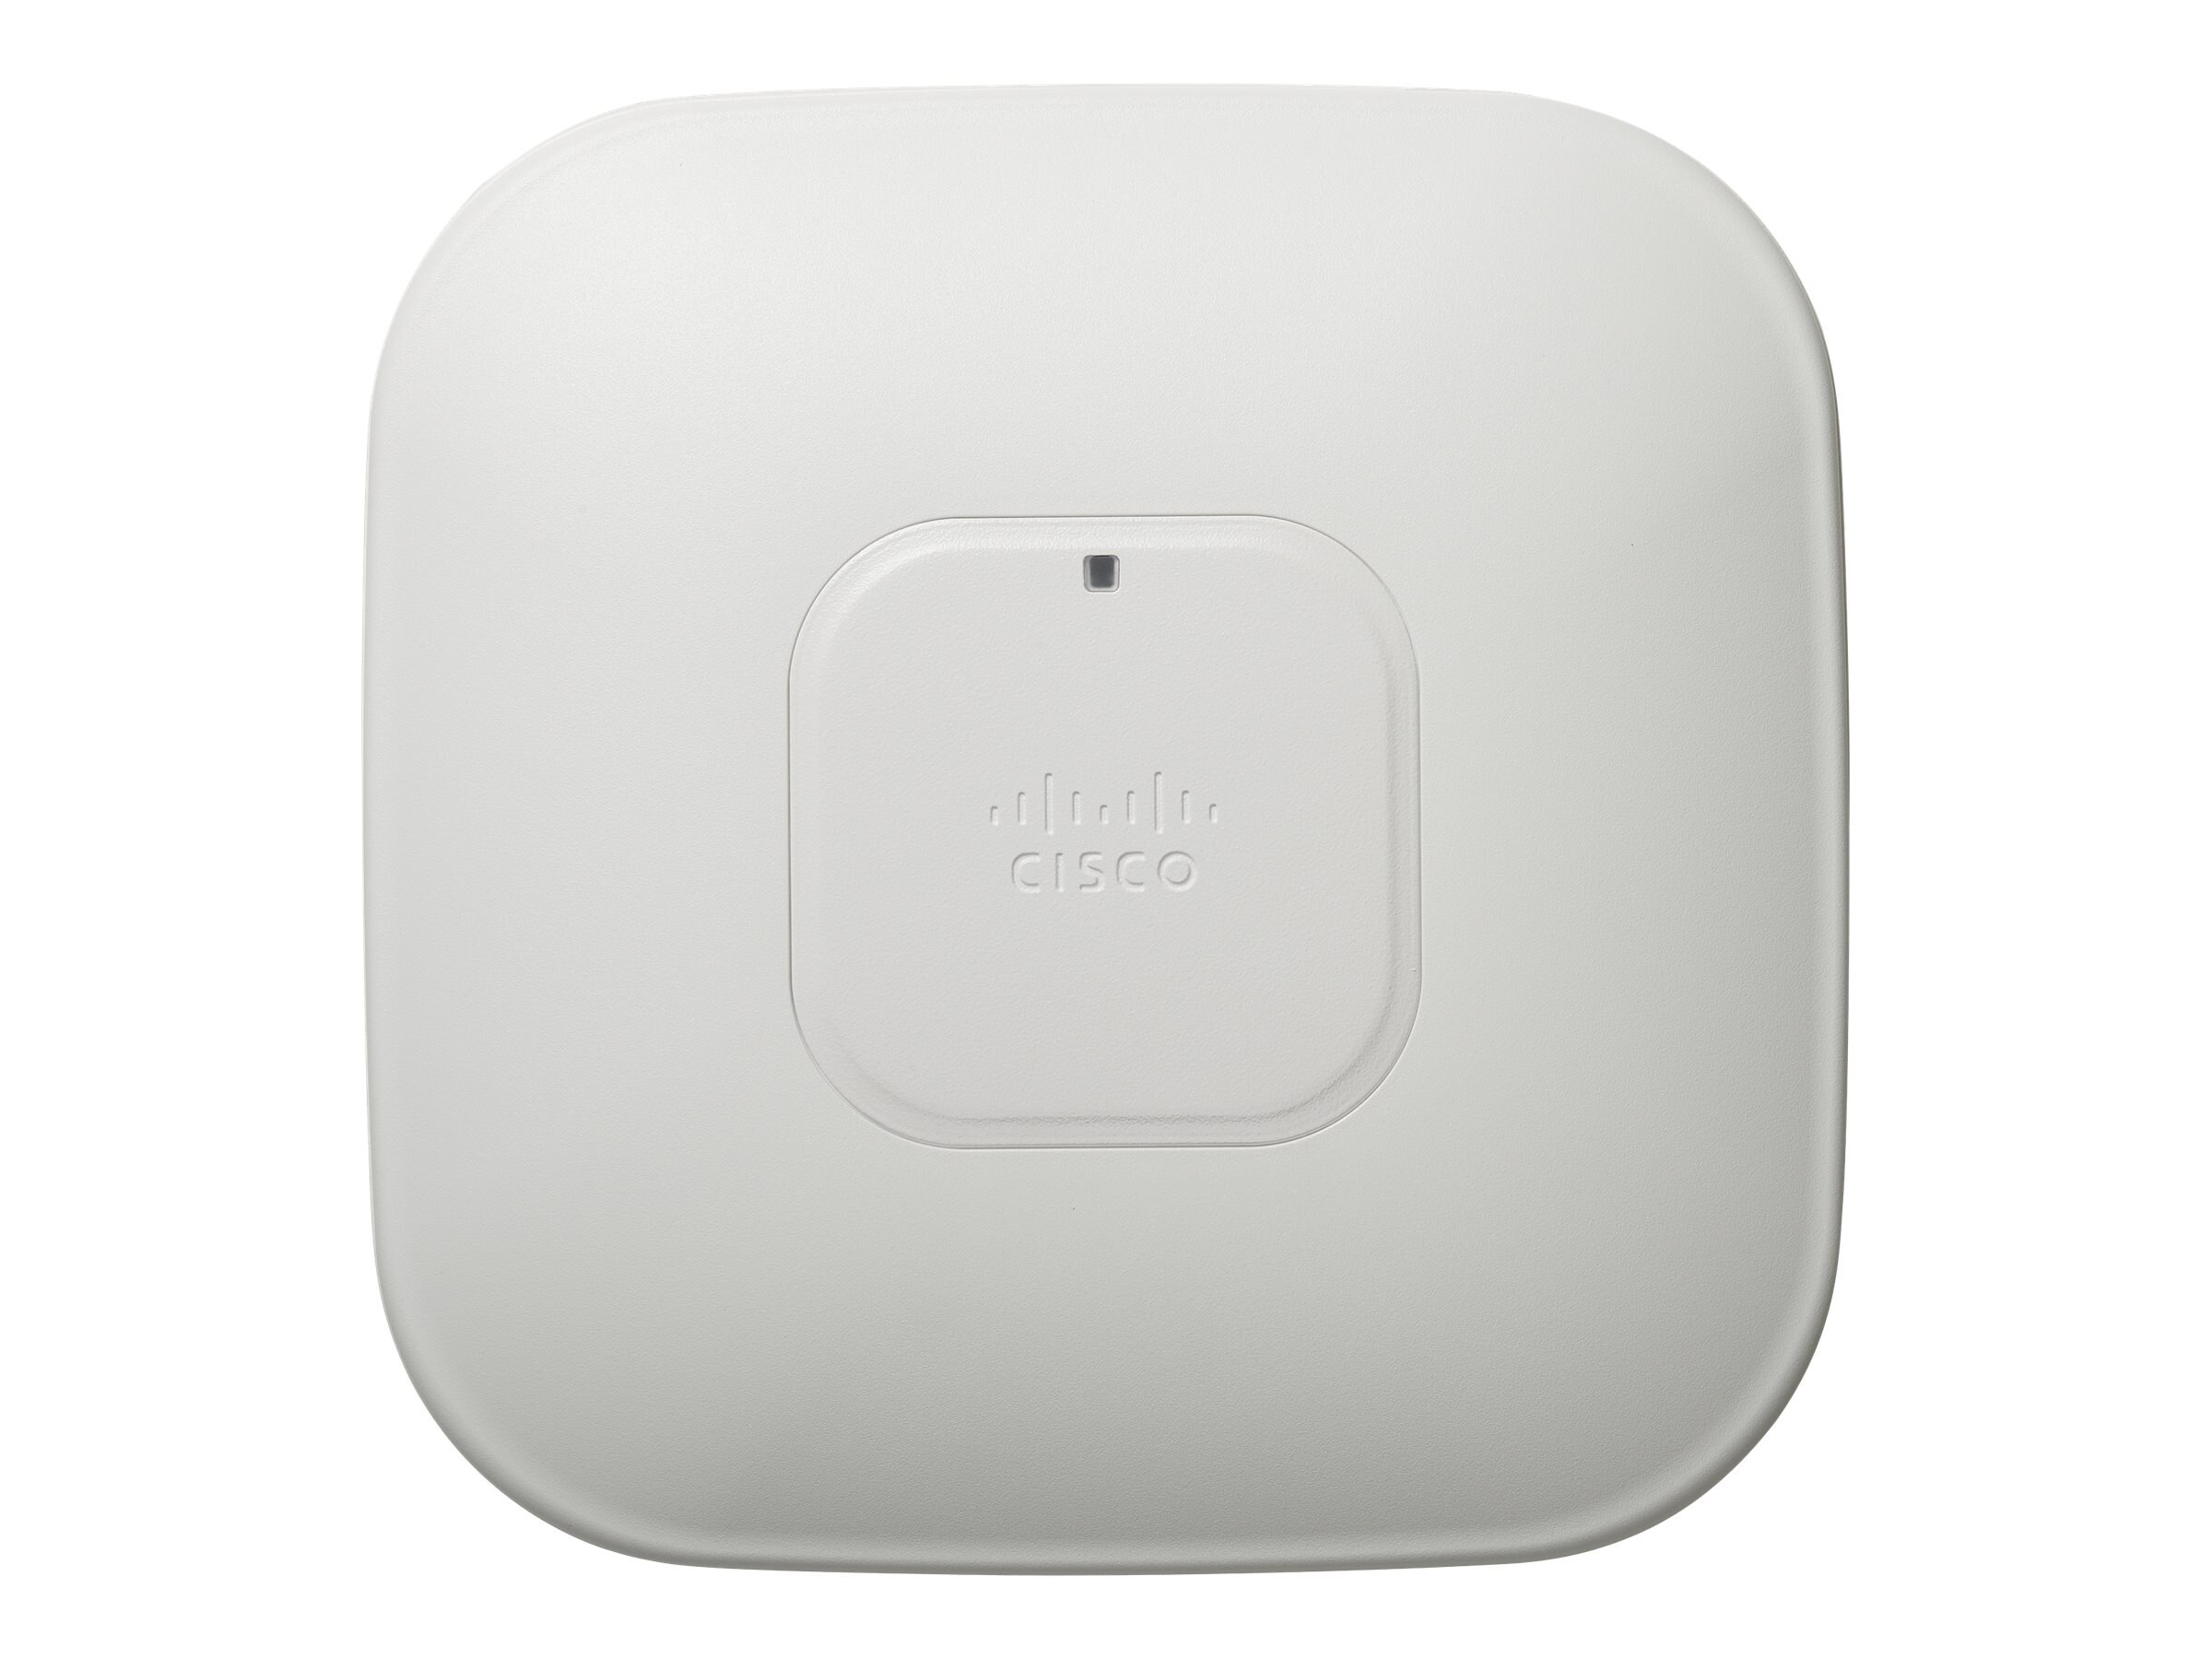 Cisco 802.11A G N AP Clean Air Internal Antenna A Region, AIR-CAP3502I-A-K9, 11590190, Wireless Access Points & Bridges